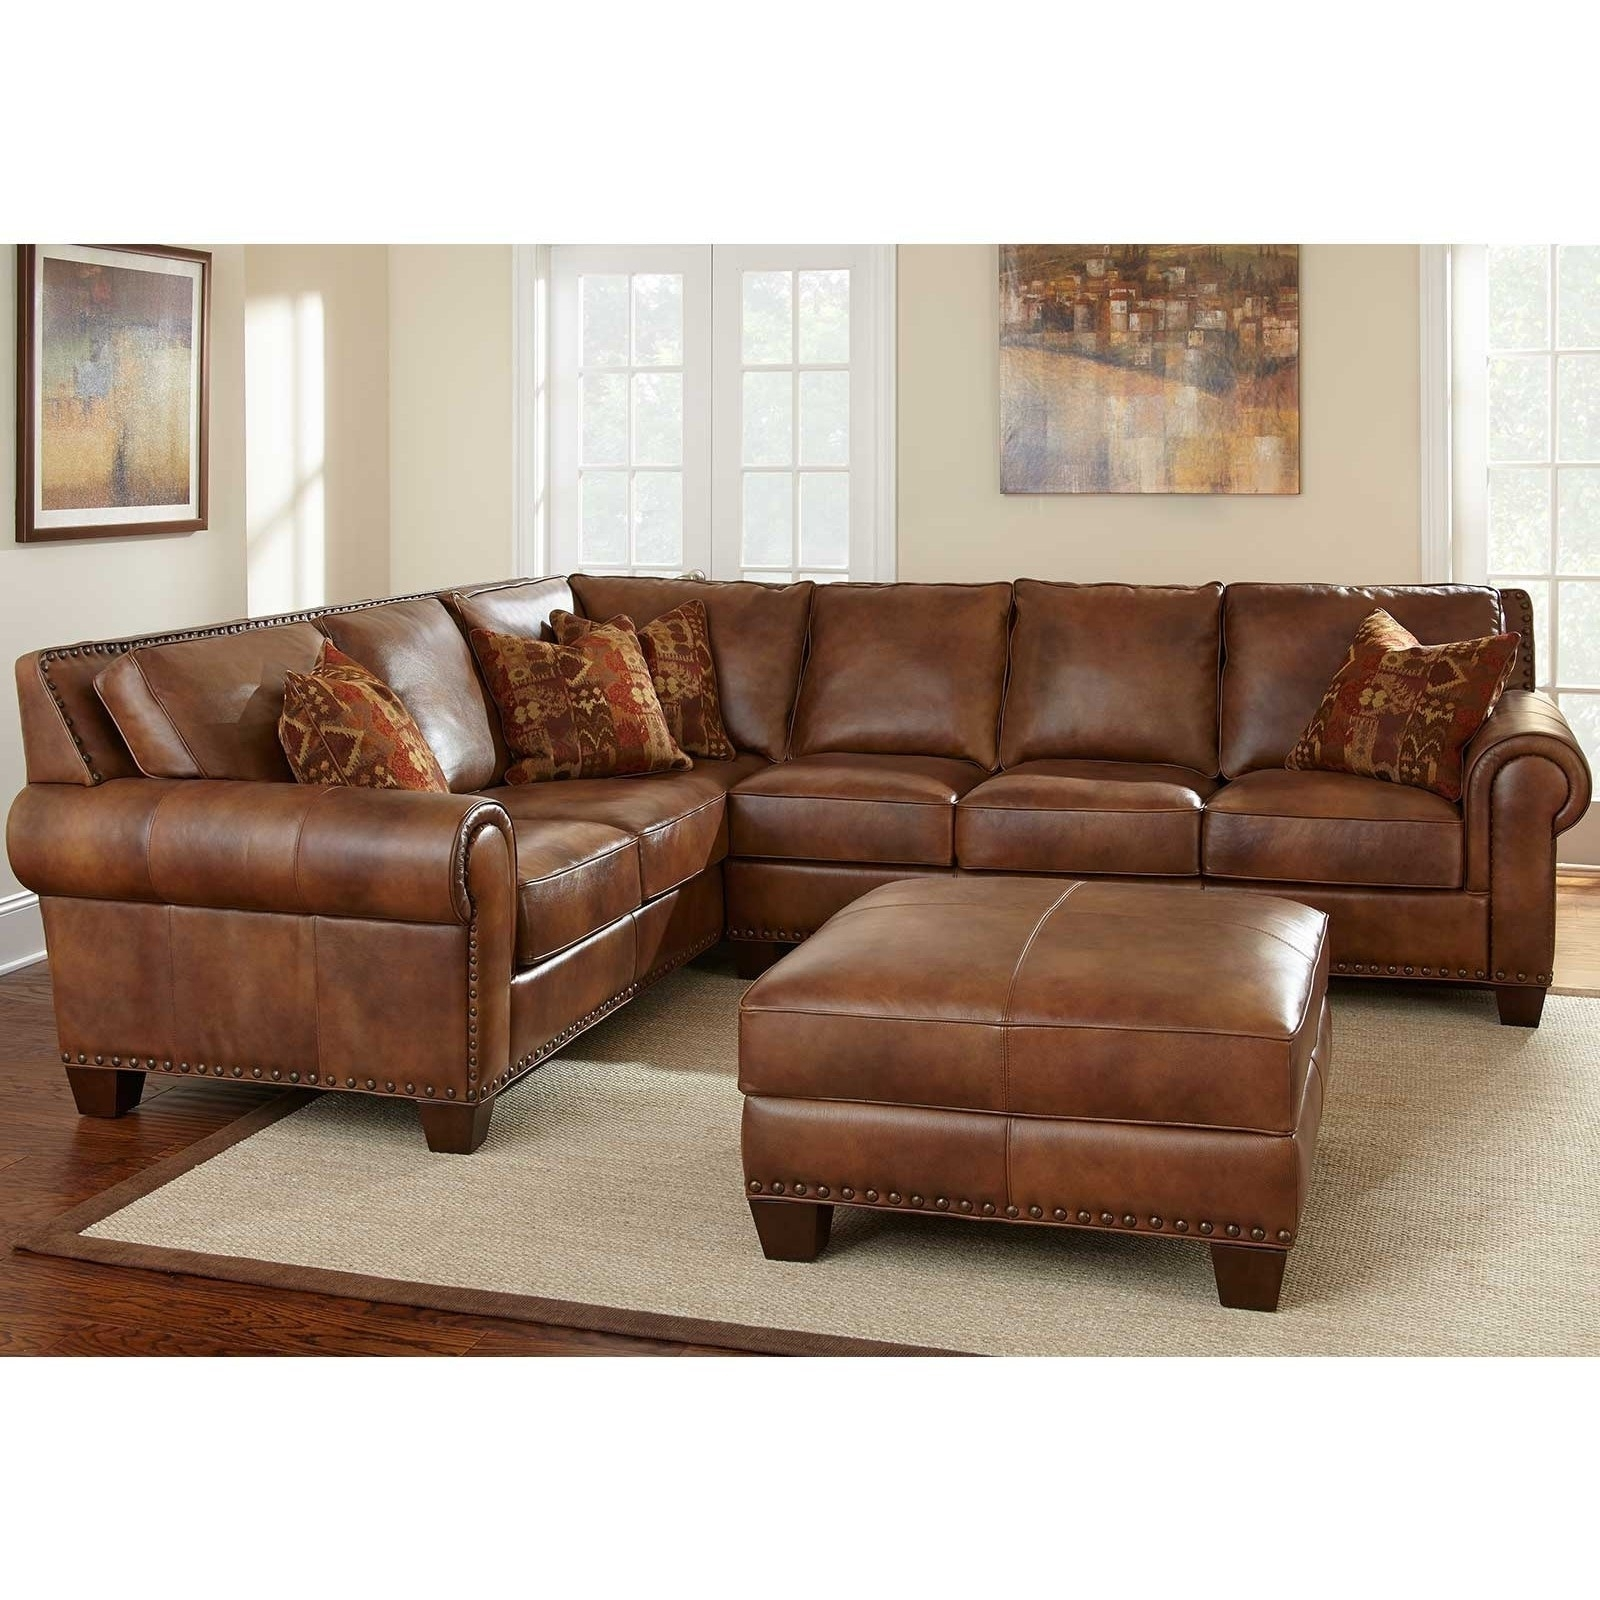 Popular Sectional Sofa Sales – Hotelsbacau Pertaining To Sectional Sofas In North Carolina (View 10 of 15)